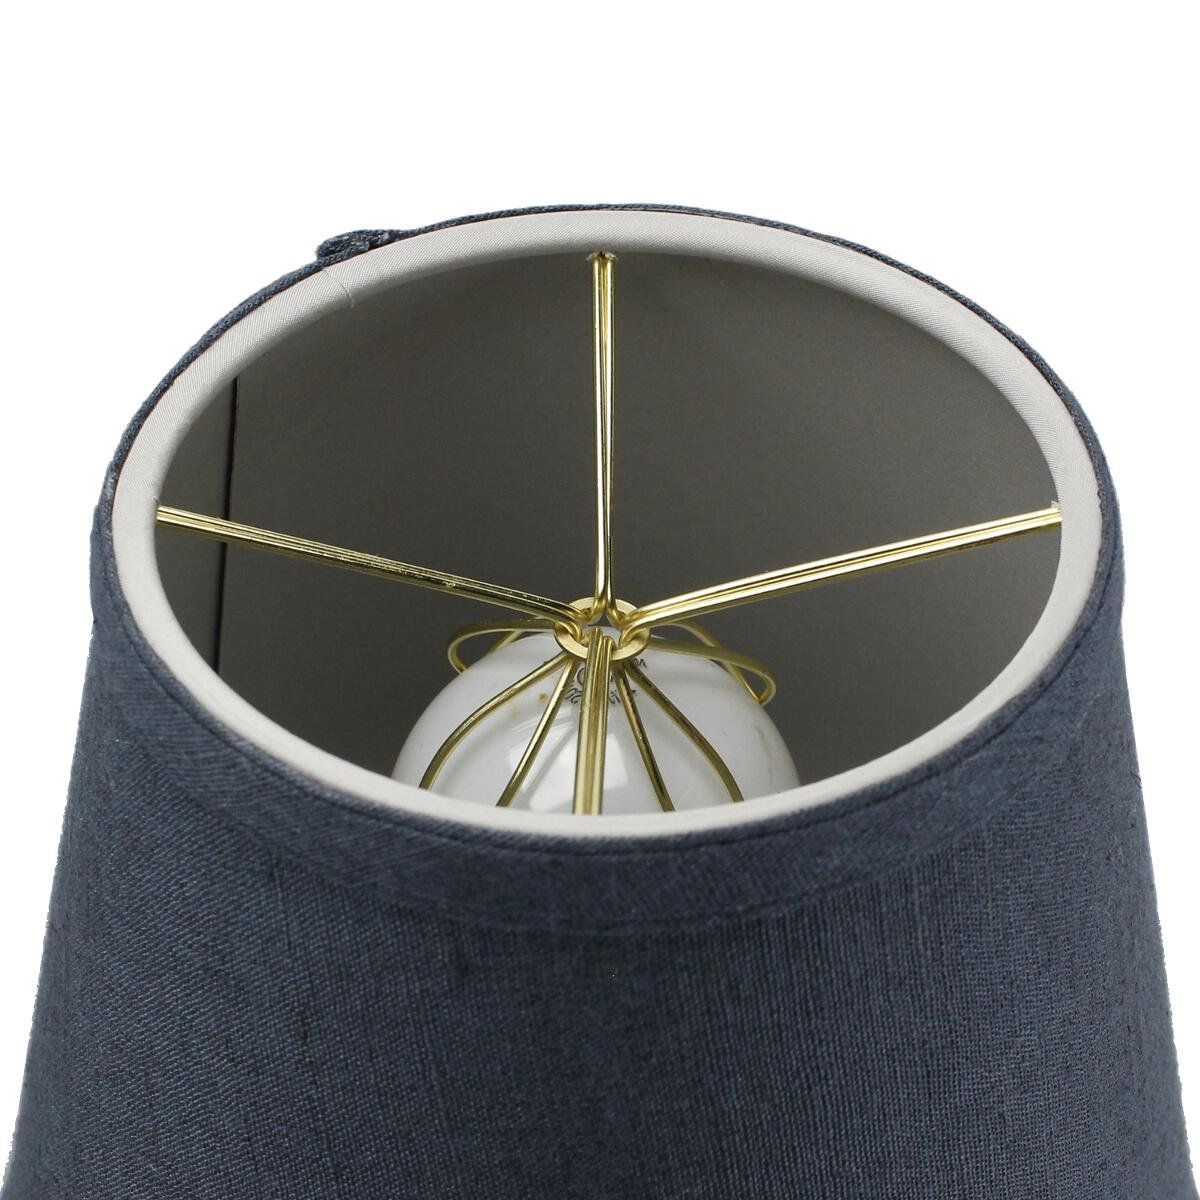 5x8x7 Textured Slate Blue Hard Back Lampshade Clip On Fitter by Home Concept - Perfect for Small Table Lamps, Desk Lamps, and Accent Lights -Small, Blue by HomeConcept (Image #2)